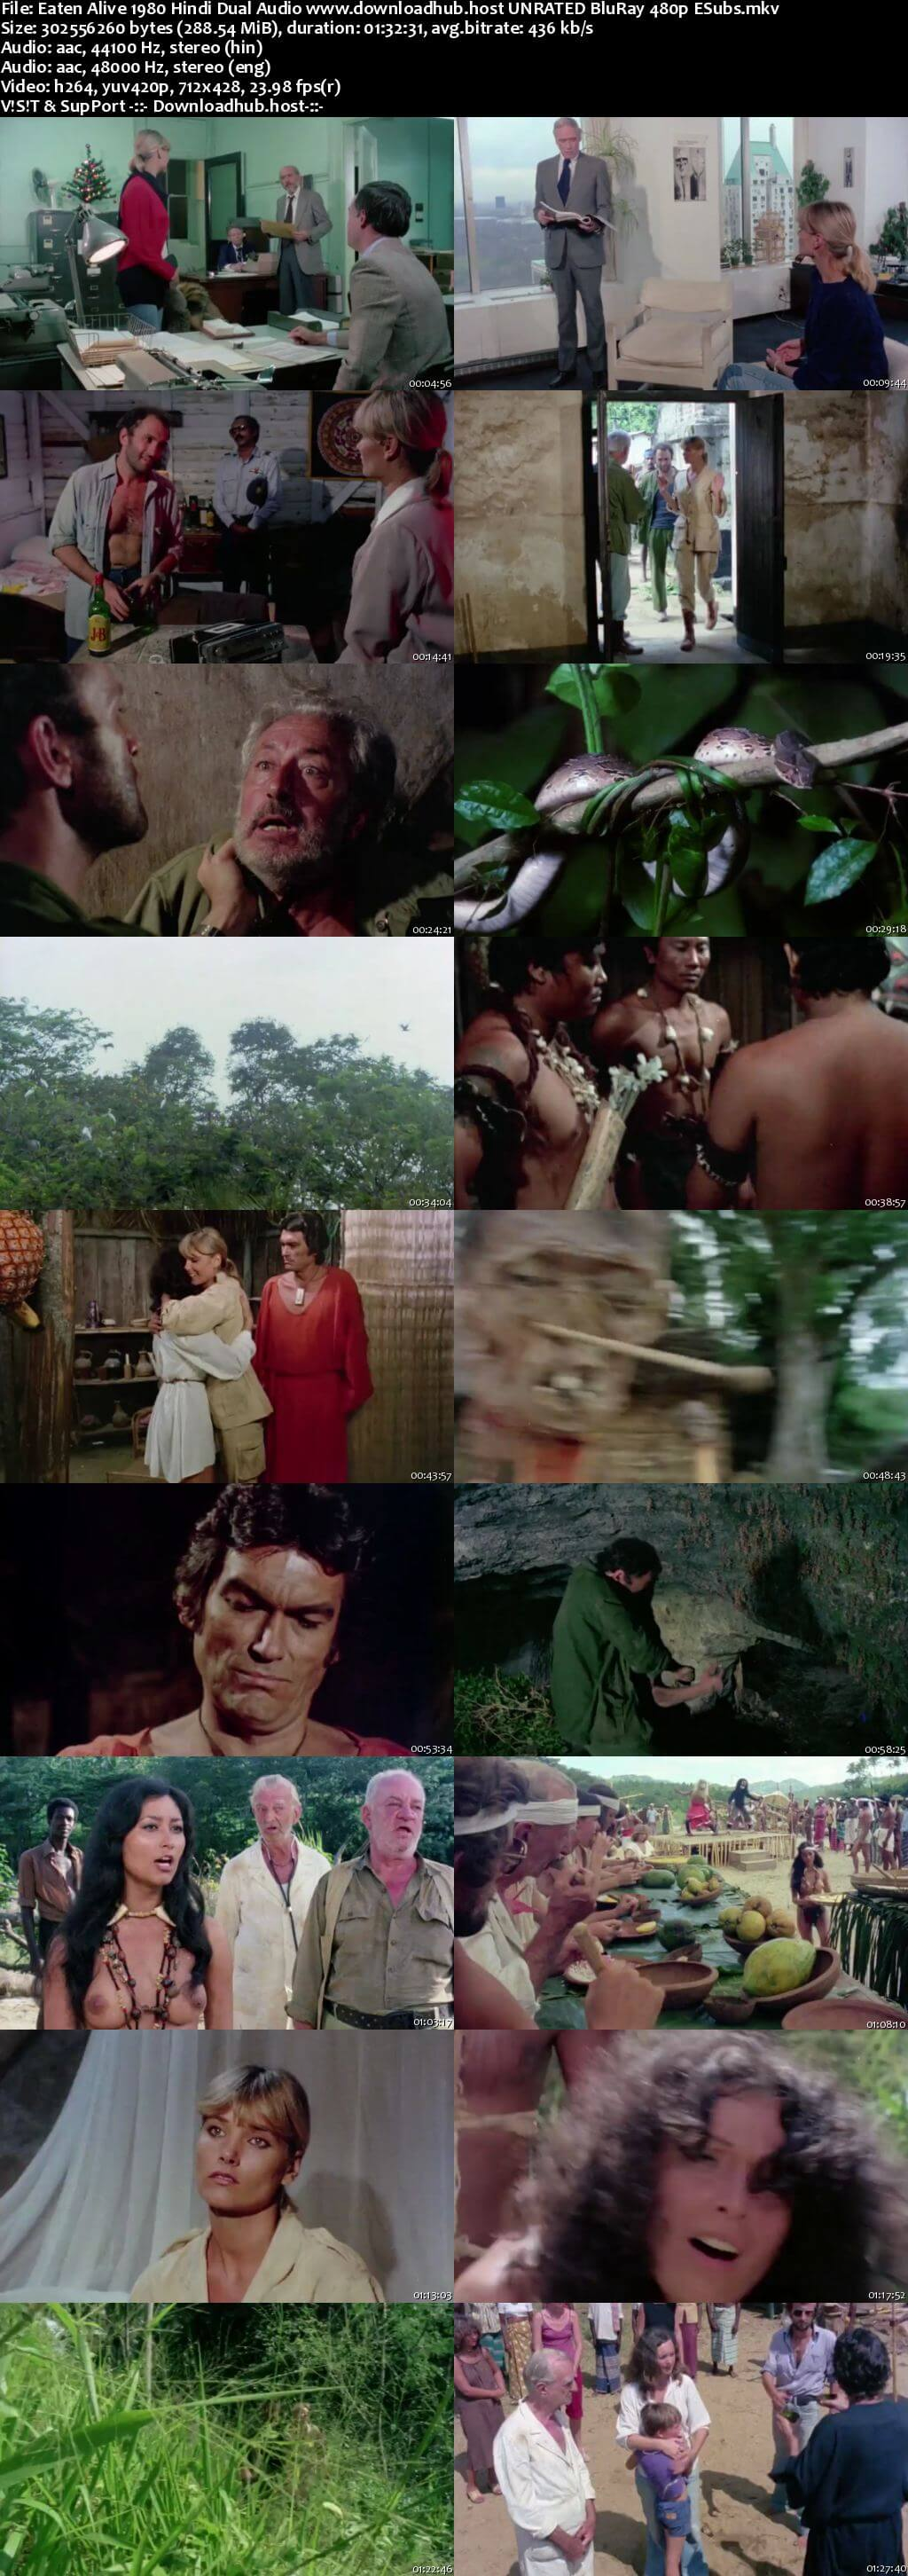 Eaten Alive 1980 Hindi Dual Audio 280MB UNRATED BluRay 480p ESubs